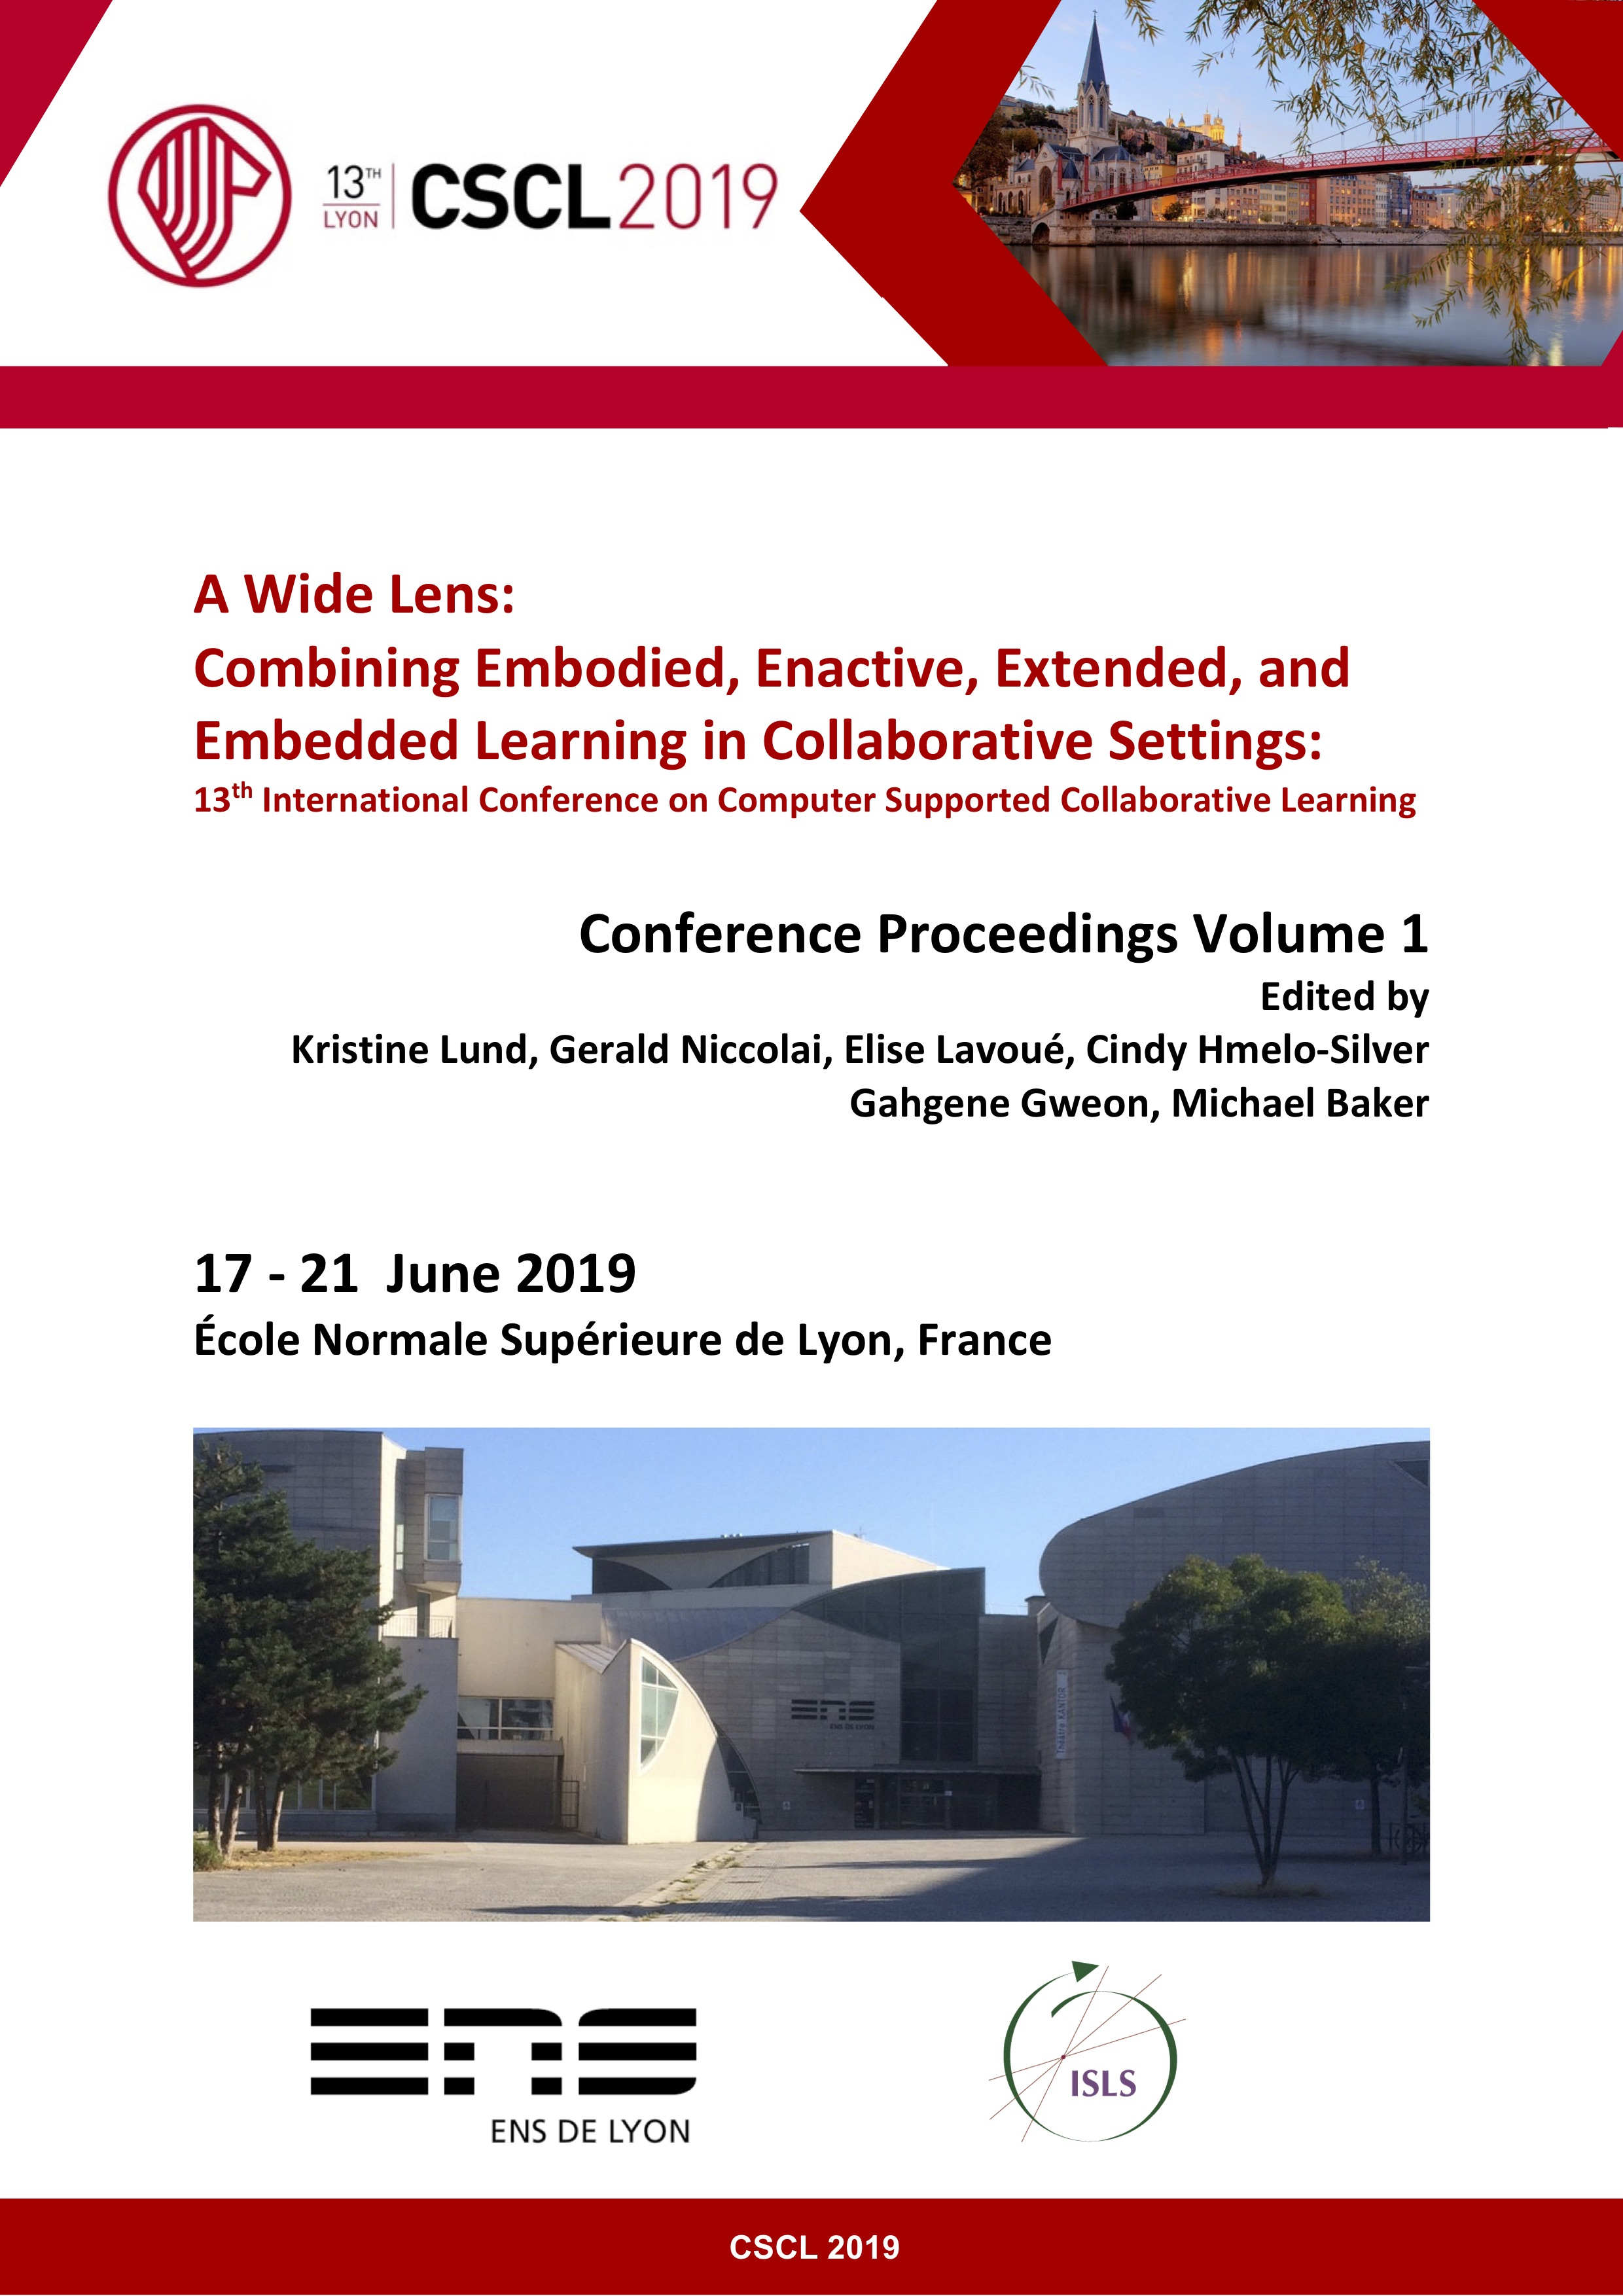 Lund, K., Niccolai, G., Lavoué, E., Hmelo-Silver, C., Gweon, G., and Baker, M. (Eds.). (2019). A Wide Lens: Combining Embodied, Enactive, Extended, and Embedded Learning in Collaborative Settings, 13th International Conference on Computer Supported Collaborative Learning (CSCL) 2019, Volume 1. Lyon, France: International Society of the Learning Sciences.